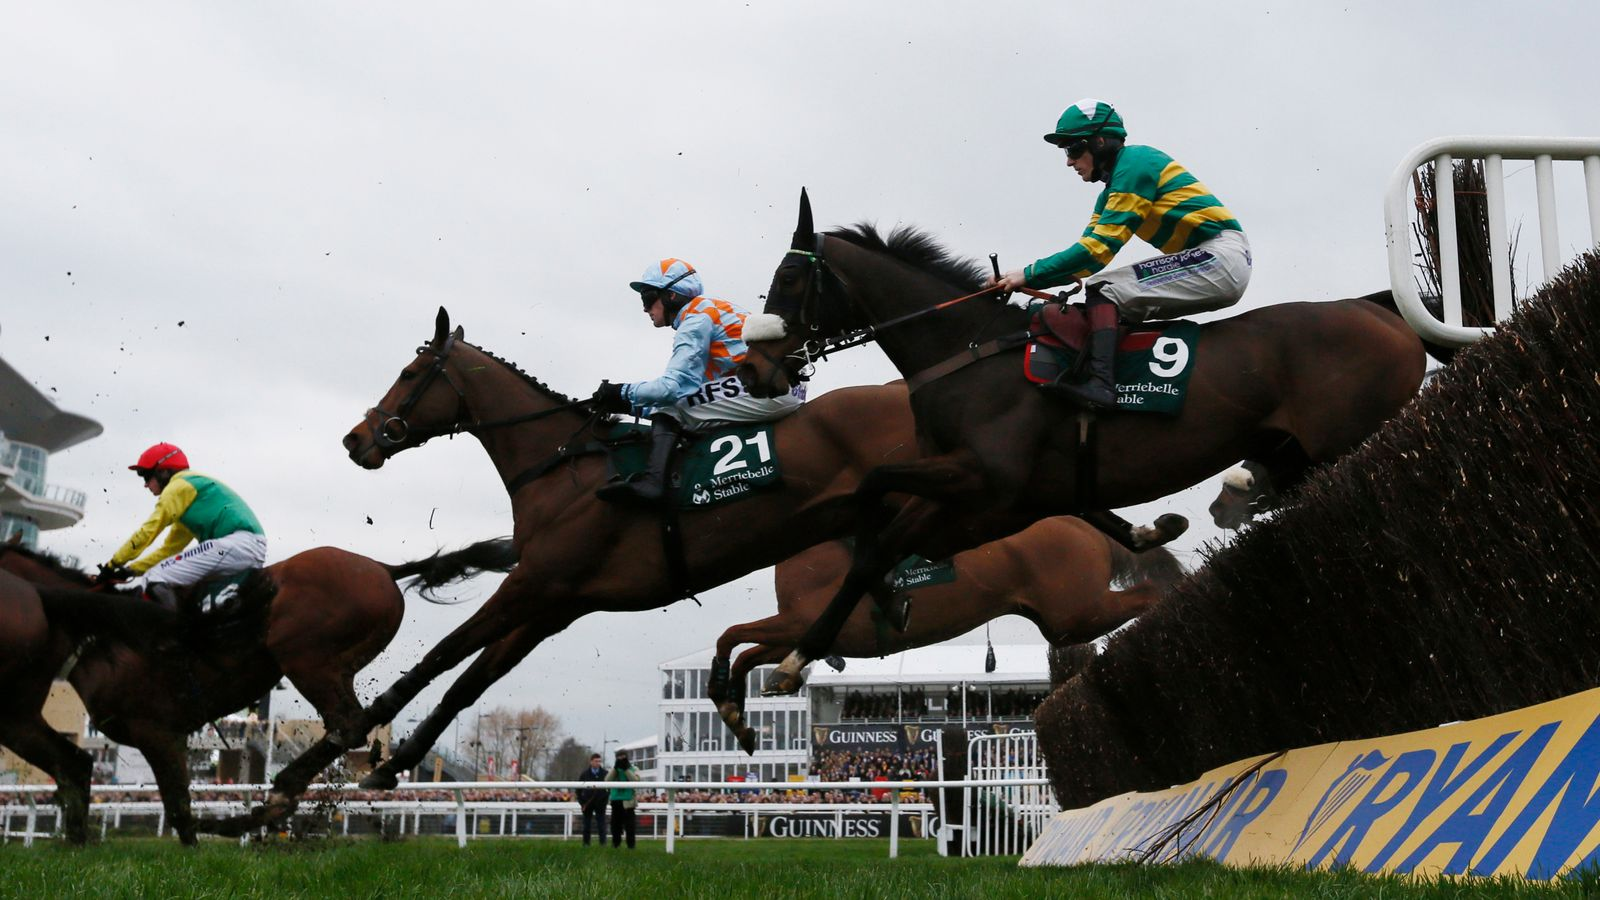 equine flu  horse racing to resume following outbreak